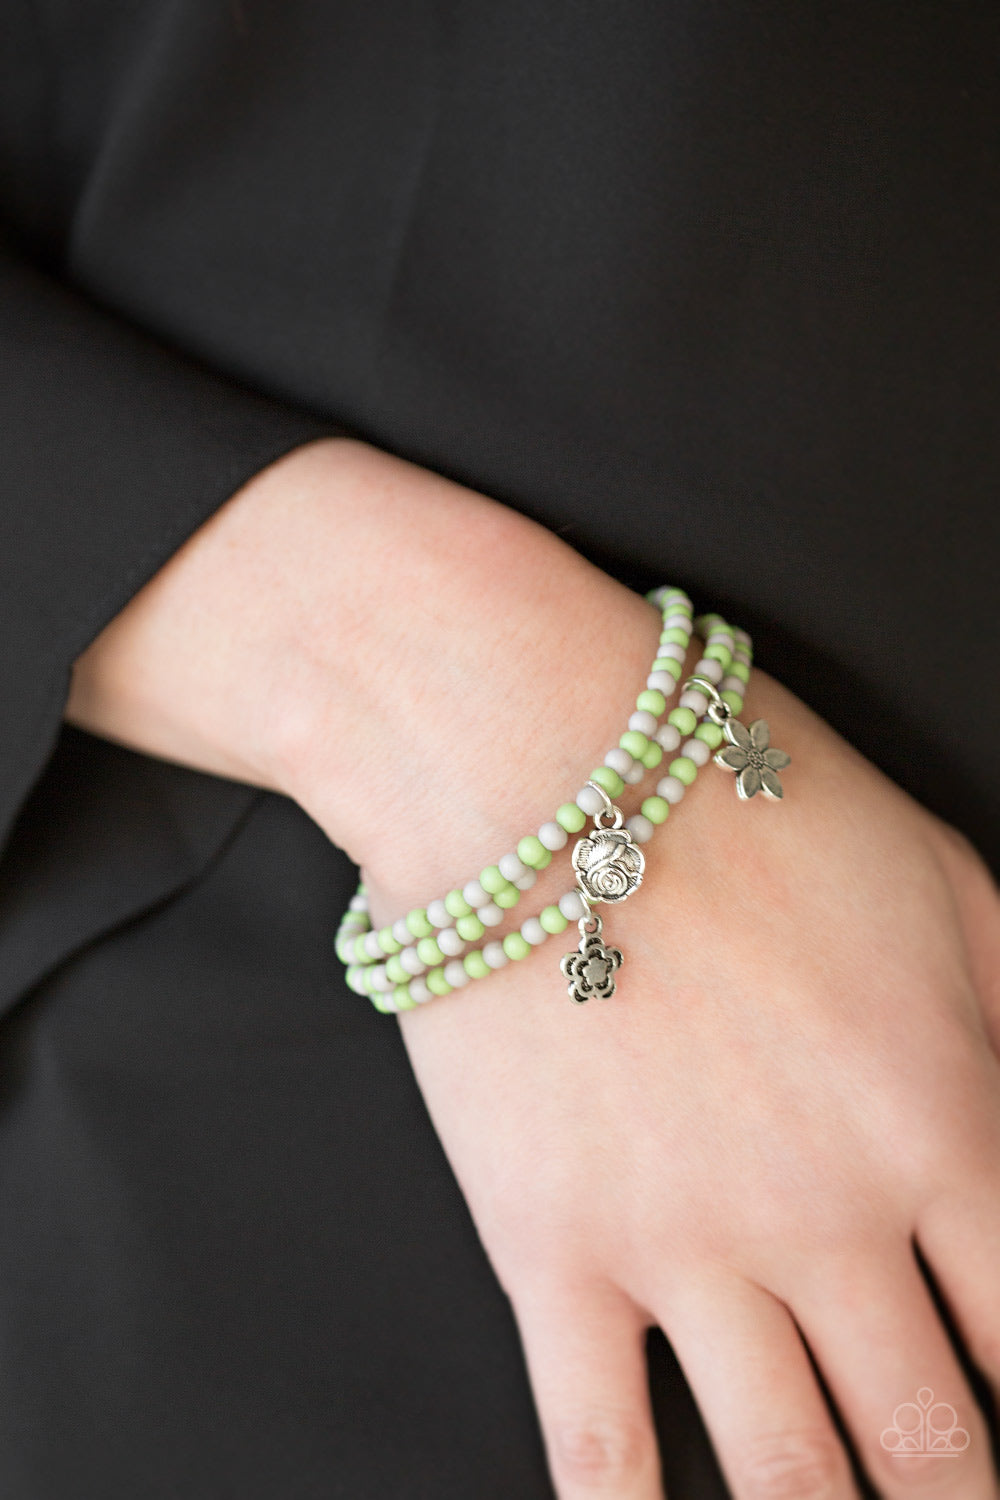 Dainty green and gray beads are threaded along stretchy elastic bands, creating colorful layers across the wrist. Brushed in an antiqued shimmer, dainty floral charms swing from the wrist for a seasonal finish.  Sold as one set of three bracelets.  Always nickel and lead free.